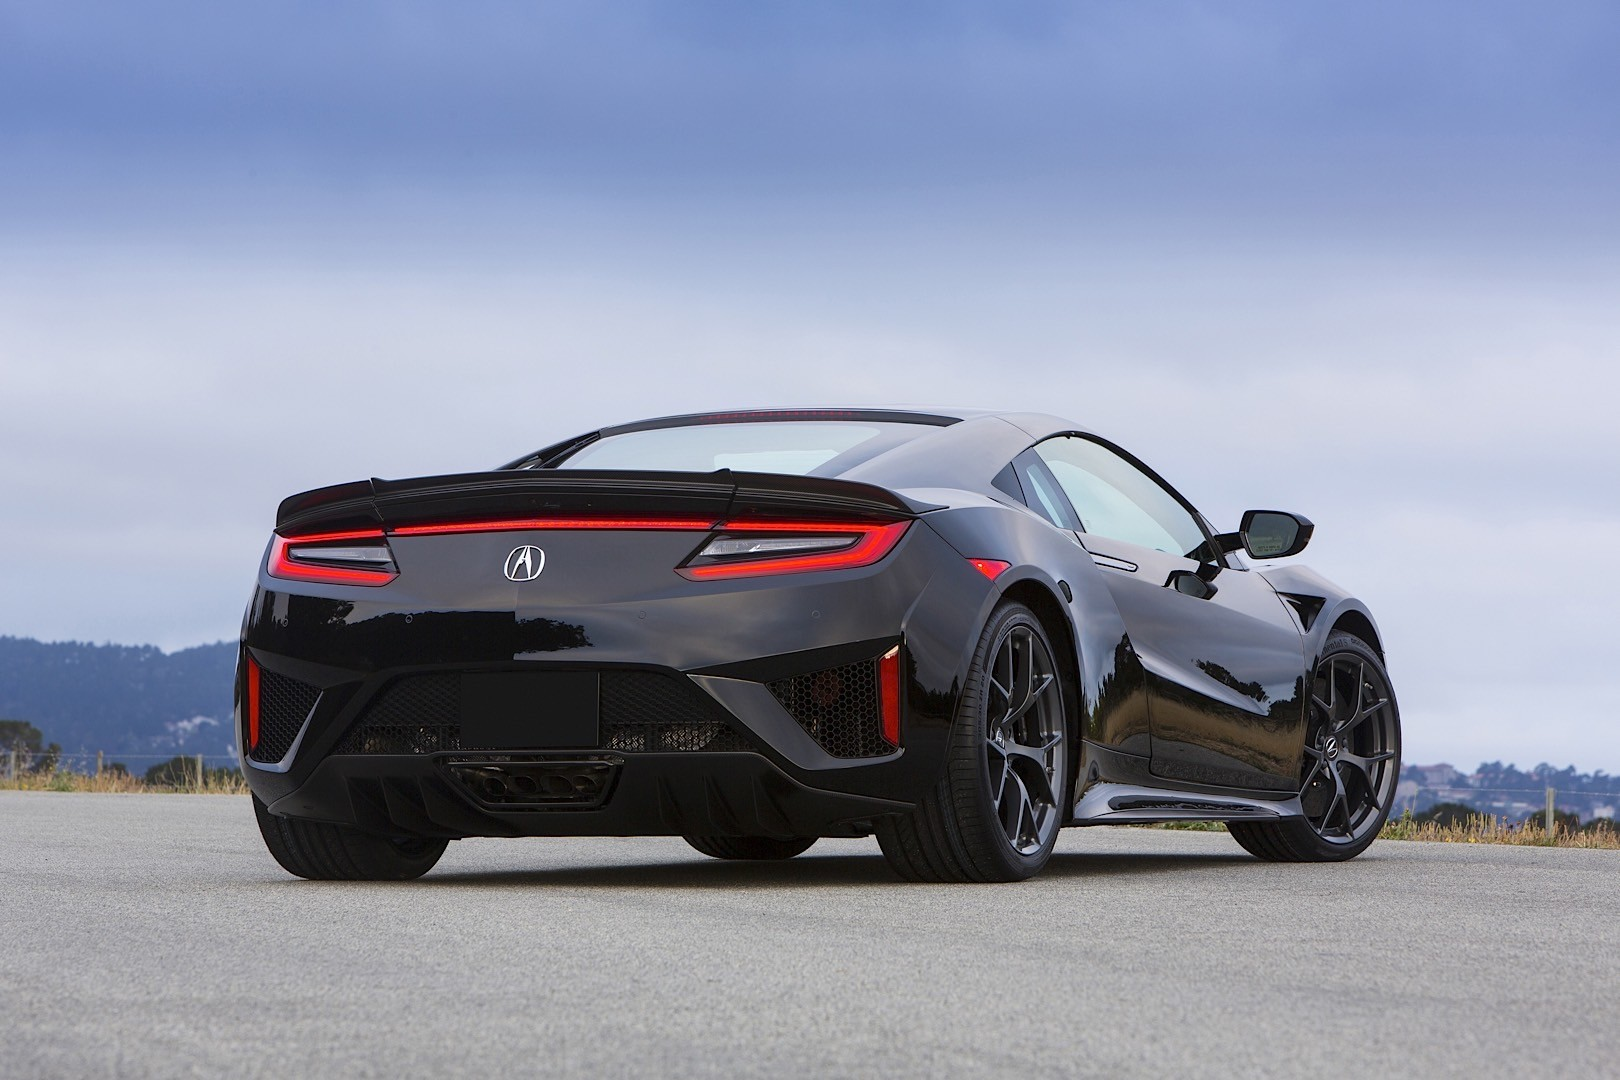 2016 Acura NSX Gets Liberty Walk Kit, but Is It Real? - autoevolution